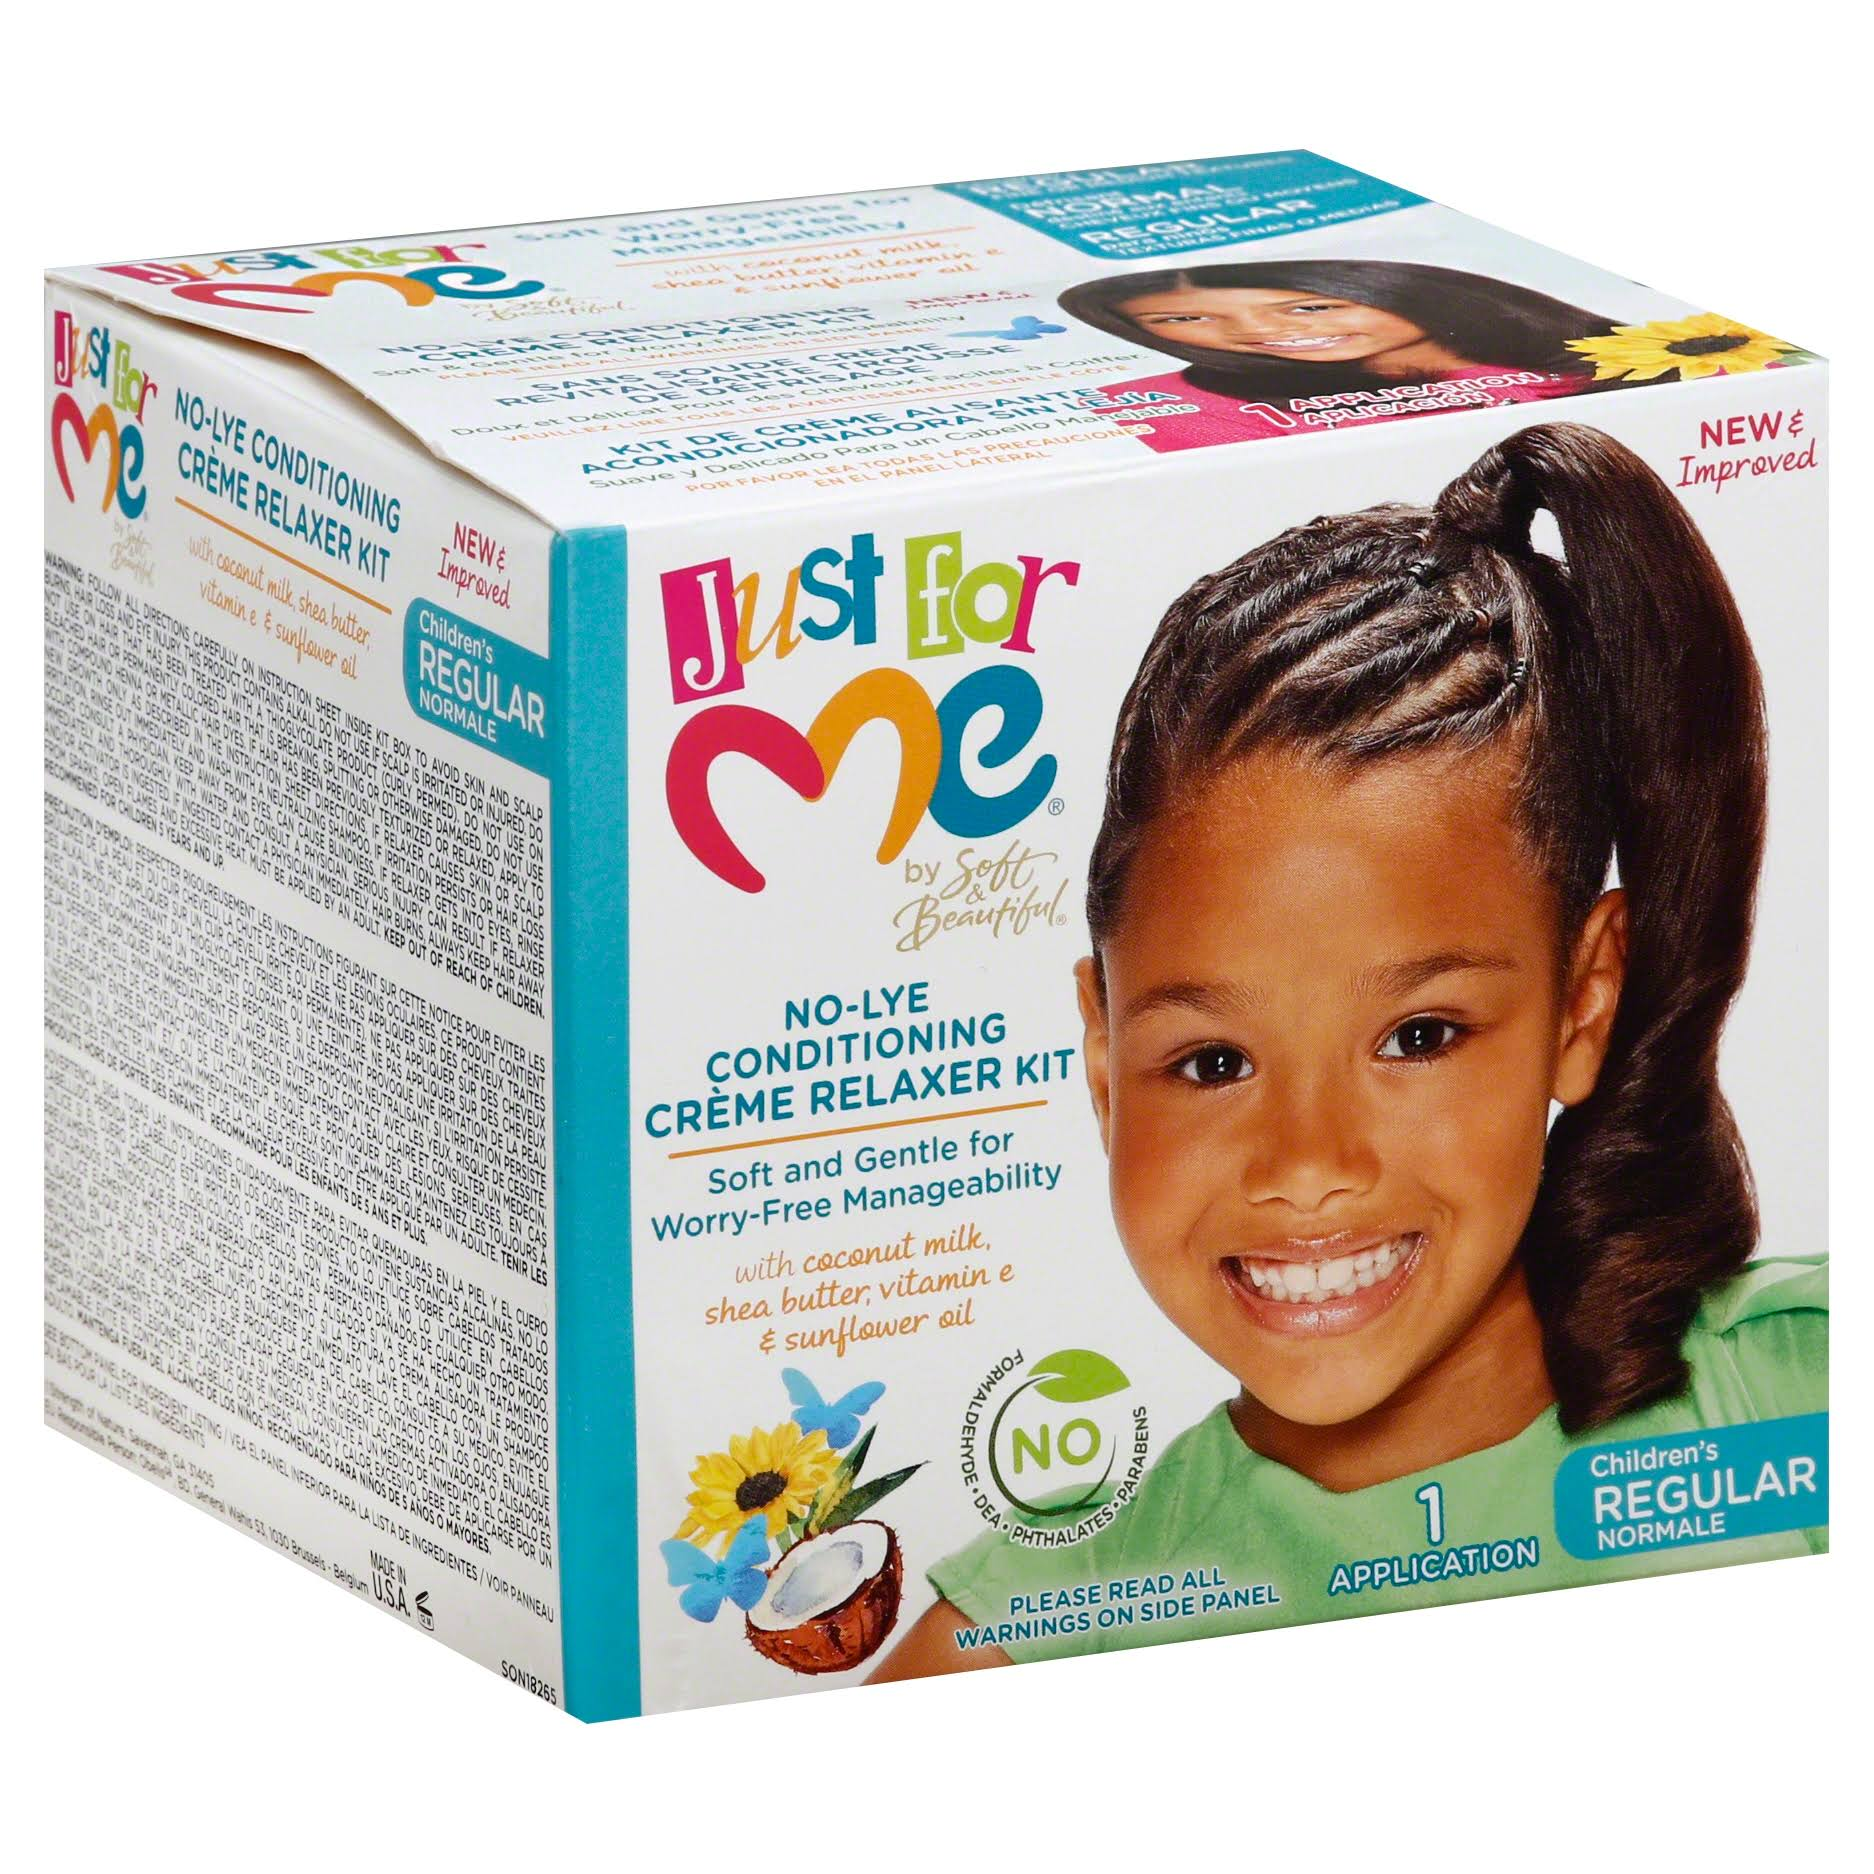 Just for Me Children's Regular No-Lye Conditioning Creme Relaxer Kit